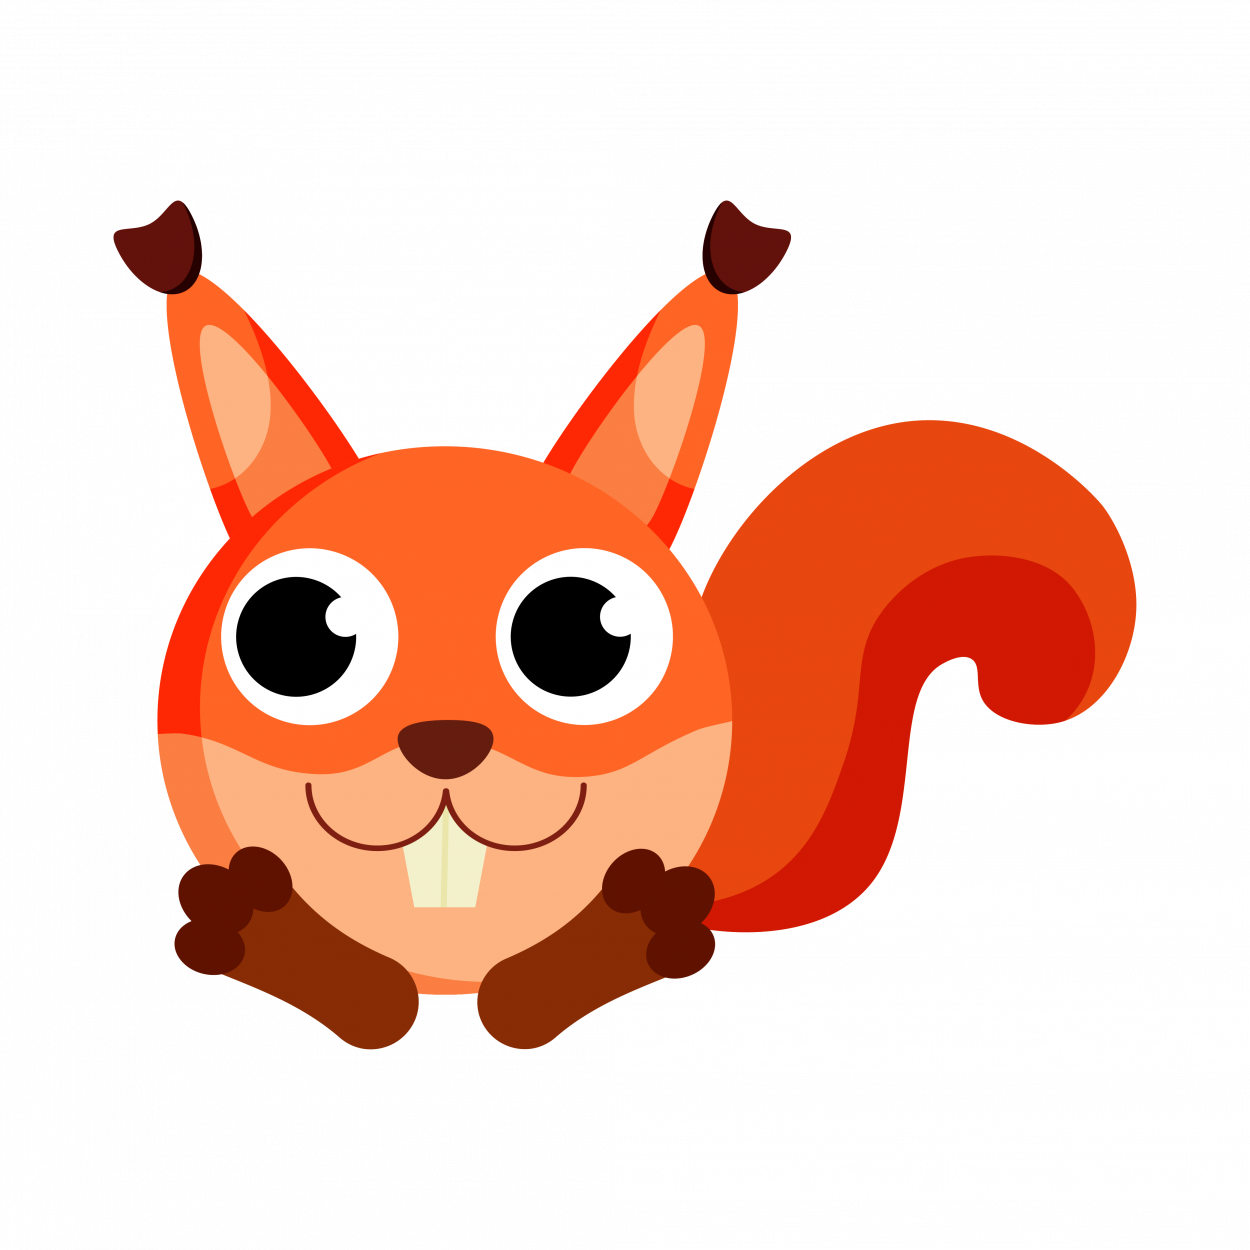 1609995201_squirrel.png